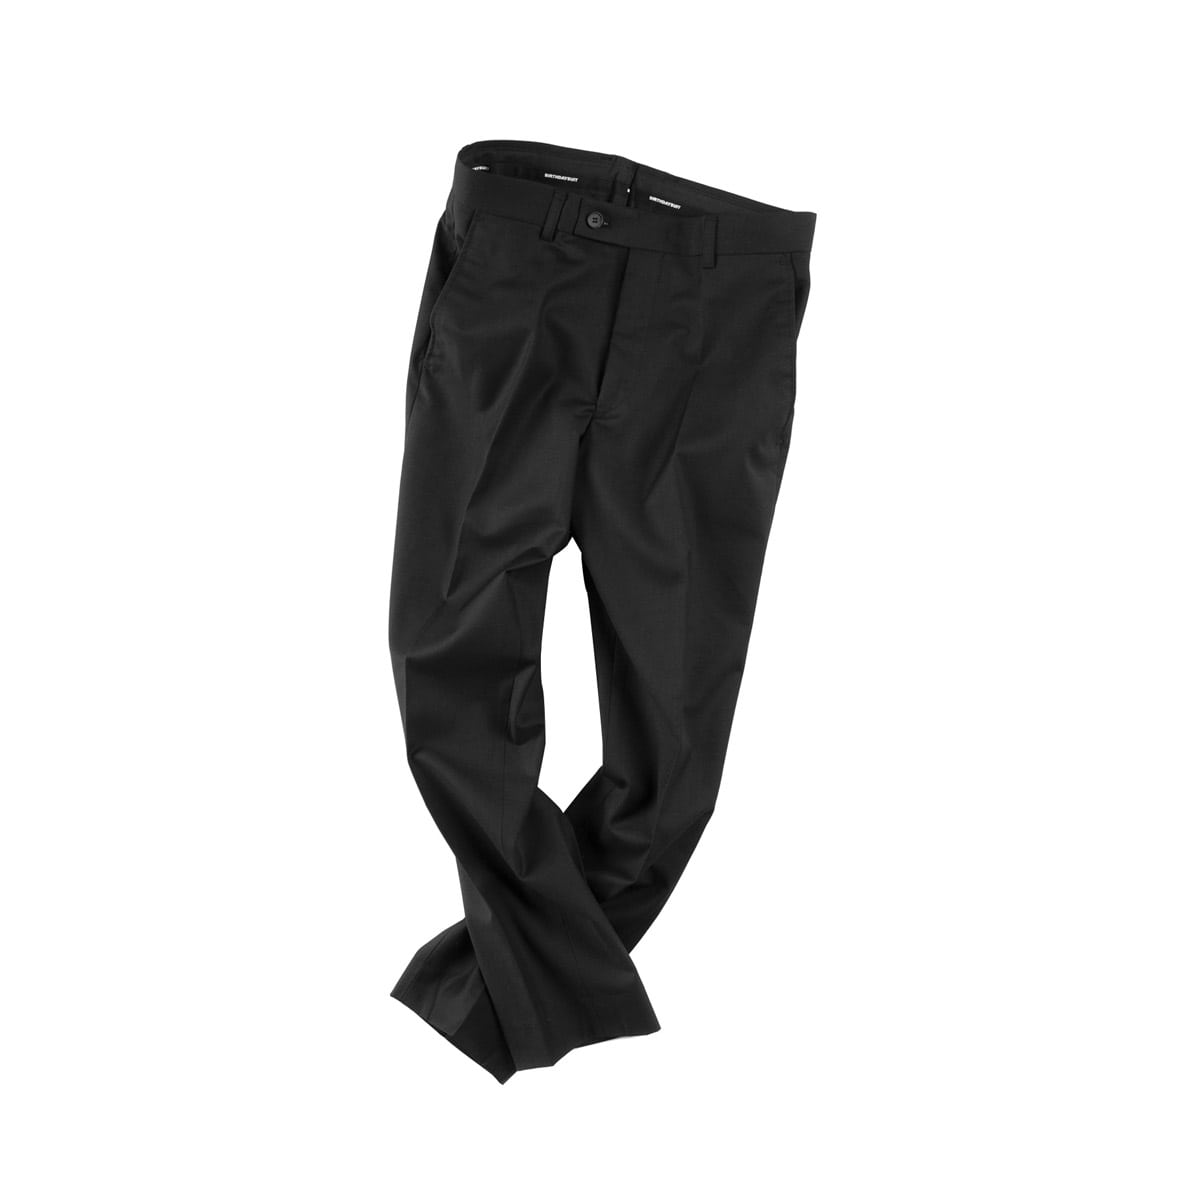 [BIRTHDAYSUIT] DAILY SUIT PANT 'BLACK'